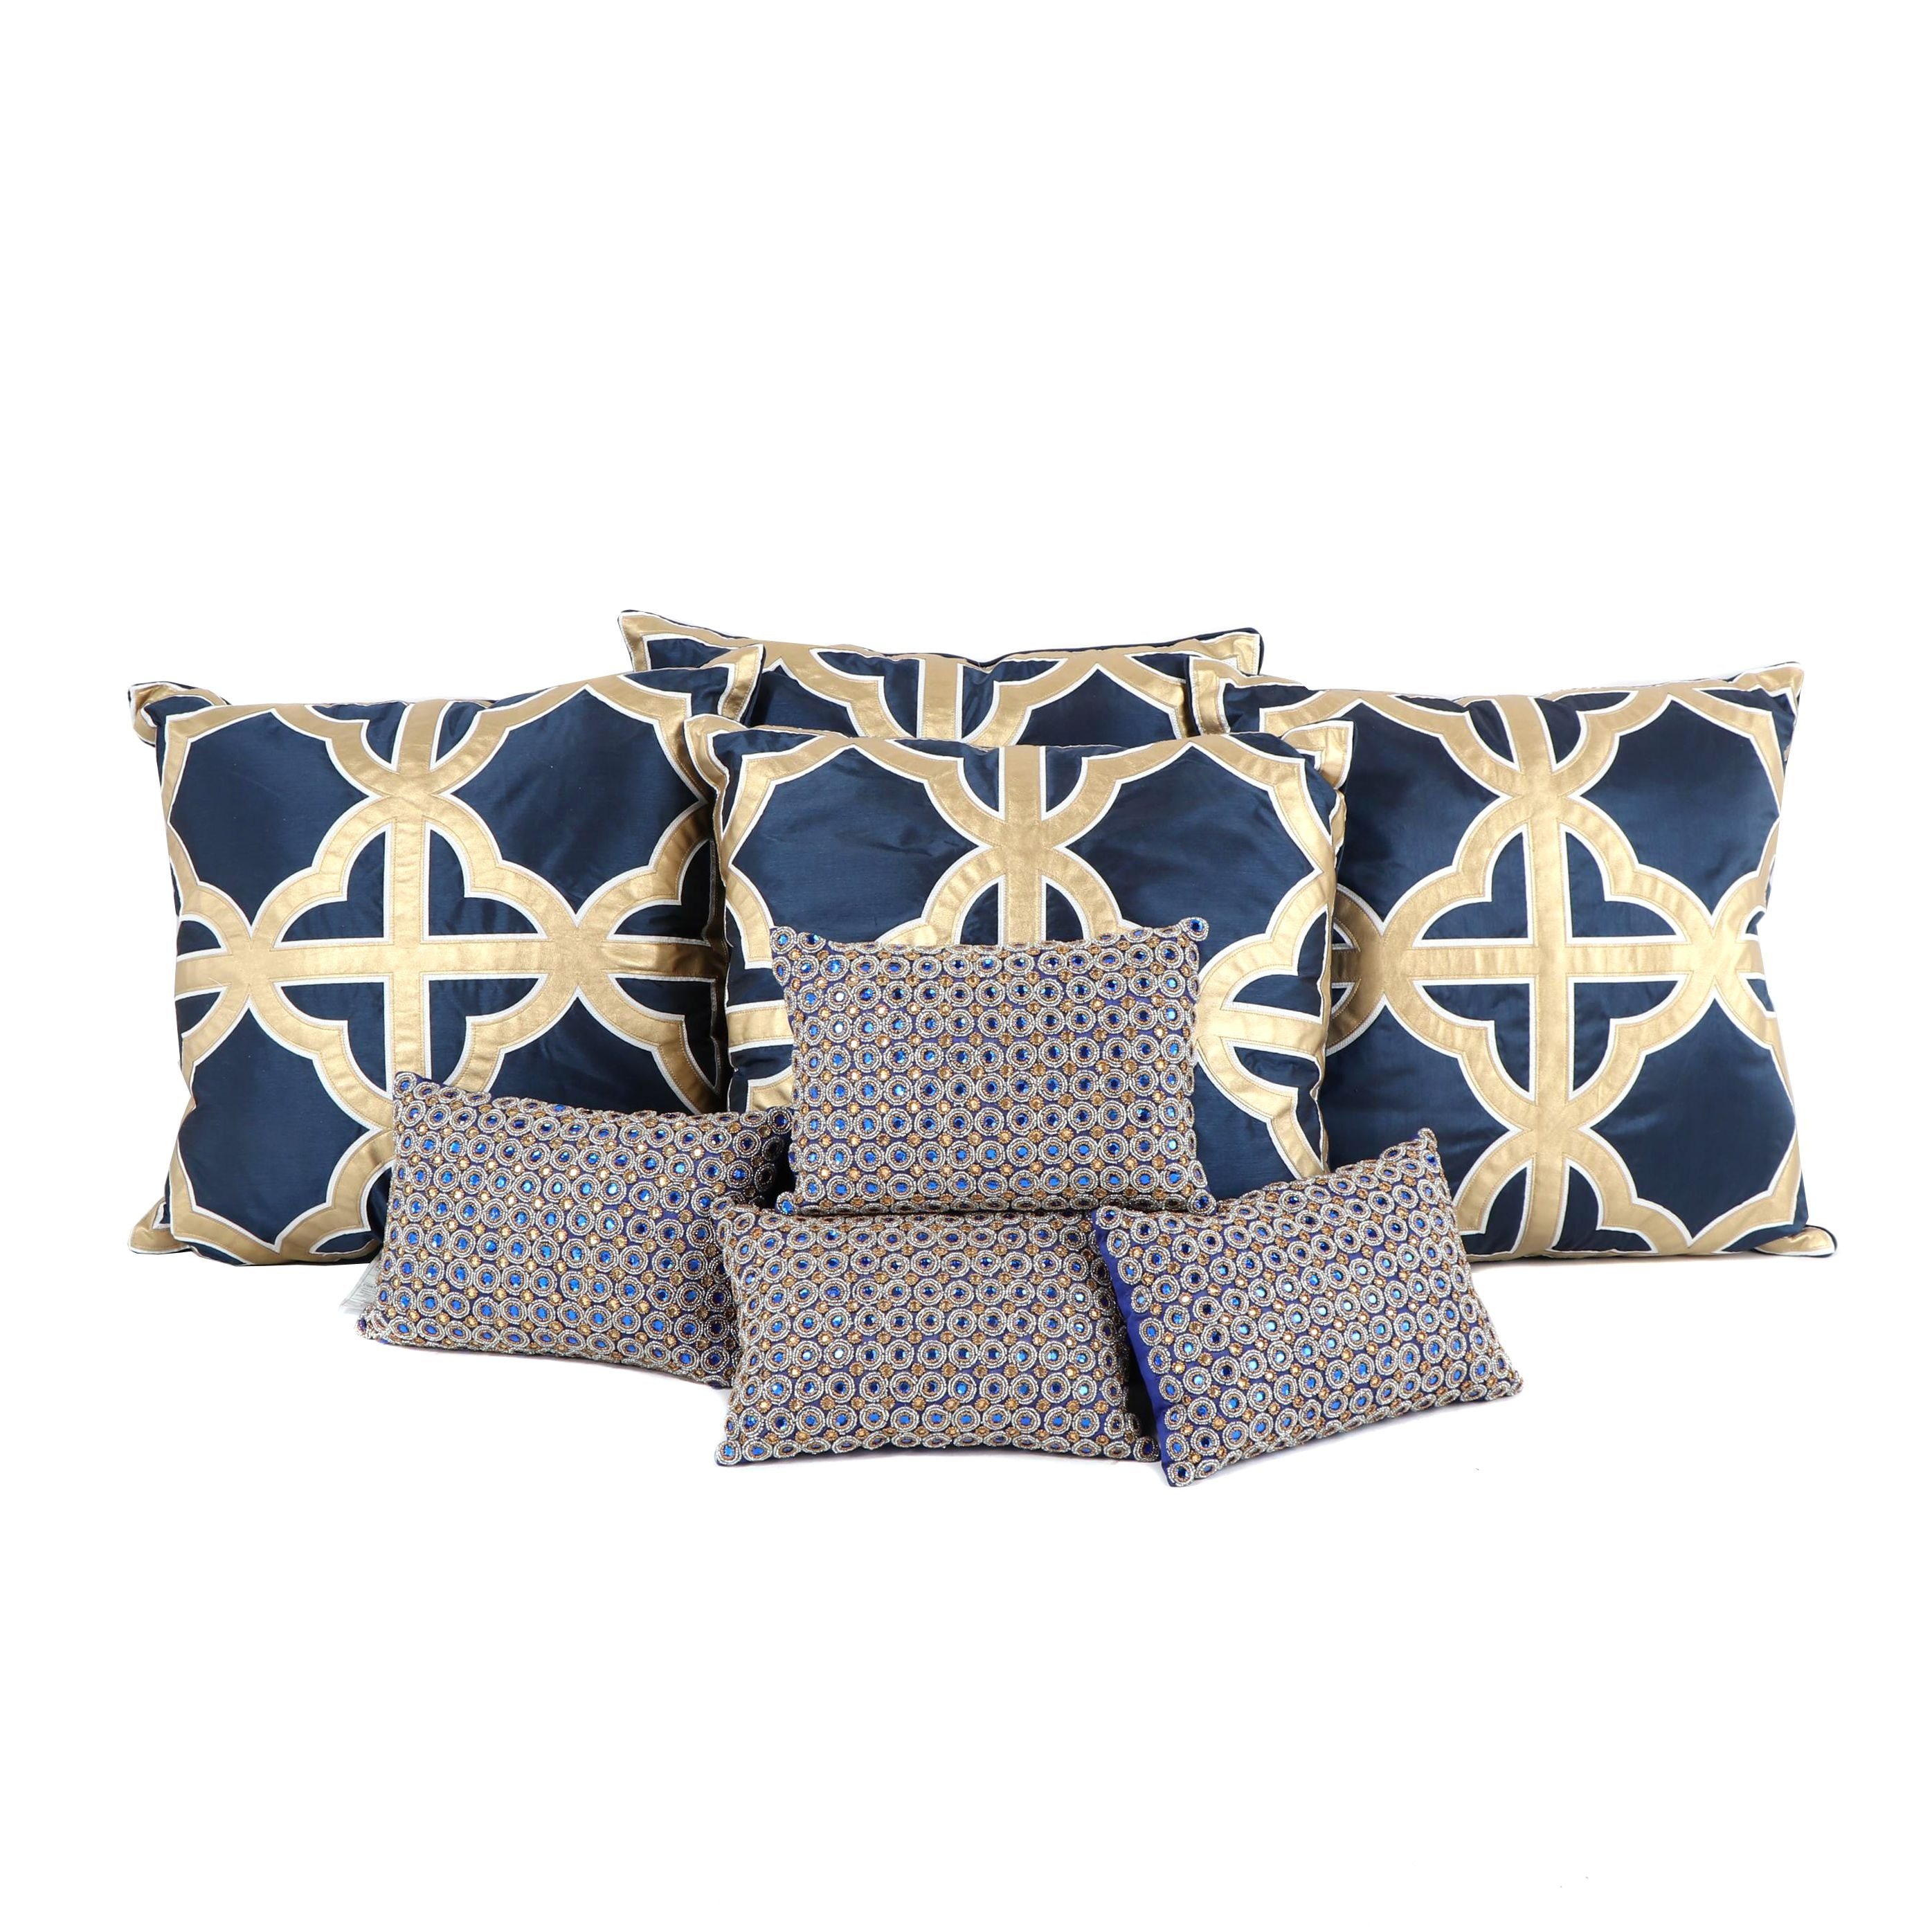 Contemporary Blue and Metallic Gold Colored Accent Pillows